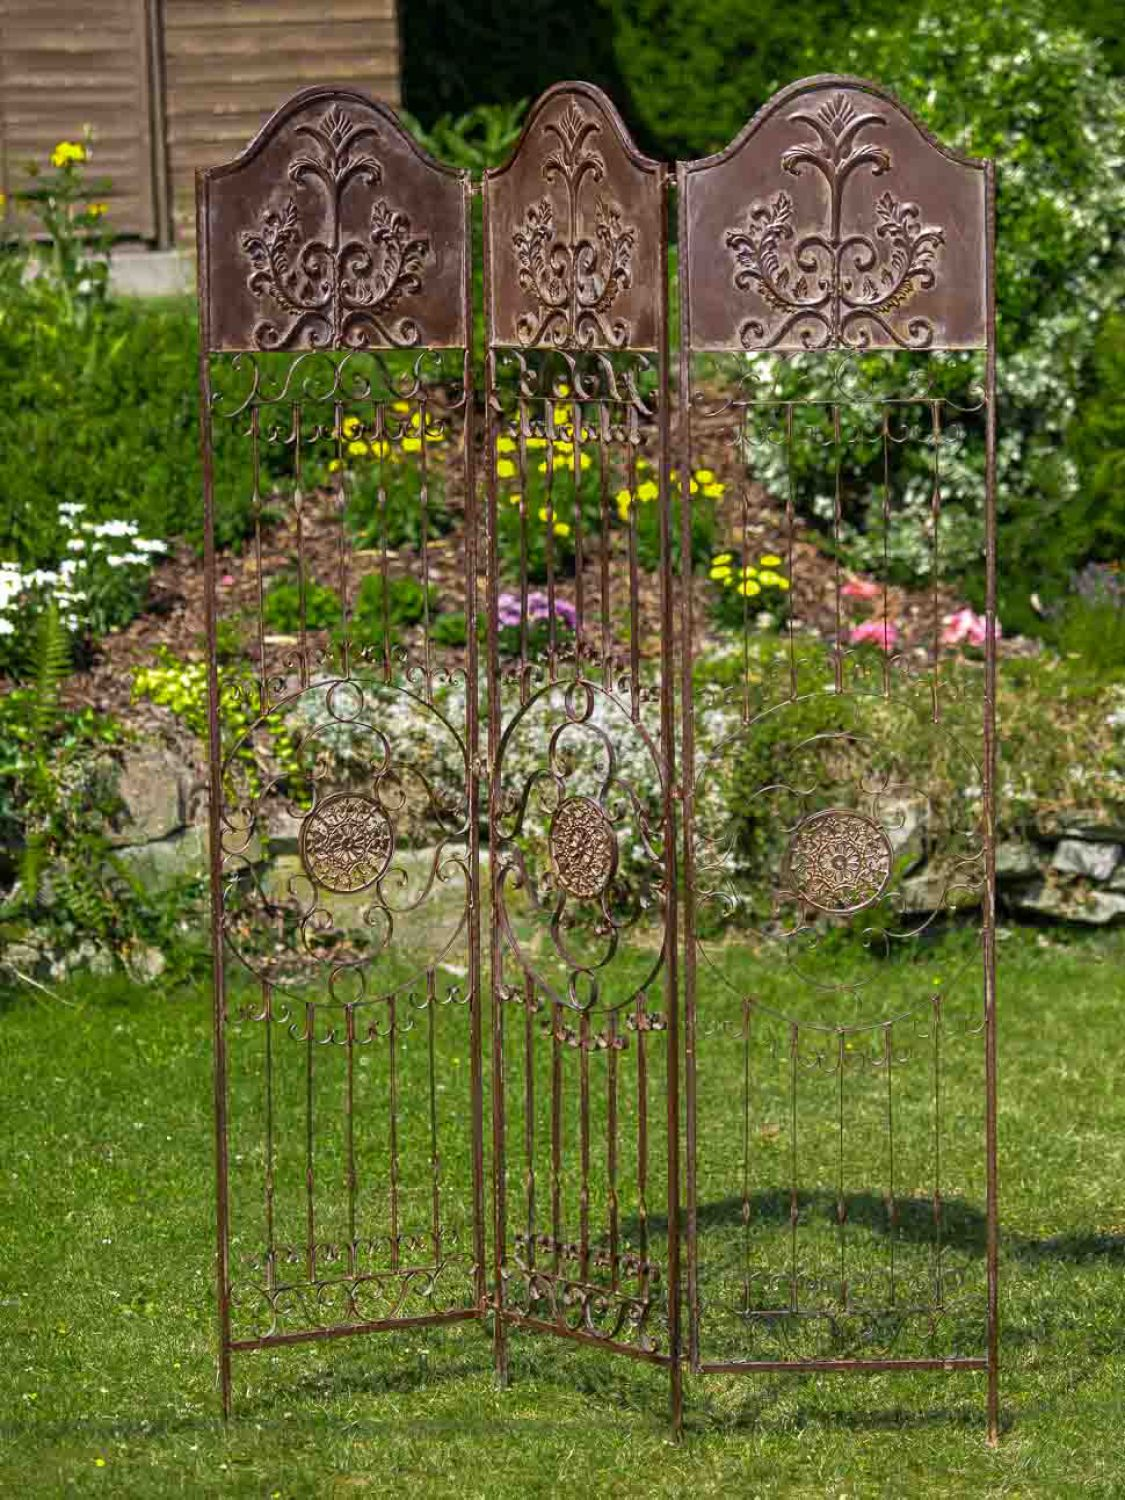 Decorative Screen  Antique Style Trellis  Wrought Iron. Party Decorations Black And Gold. Western Decor Cheap. Decorative Lamps. Home Cabin Decor. Animal Wall Decor. Shabby Chic Decorating. Decorative Bookcases. Heart Decorations Home